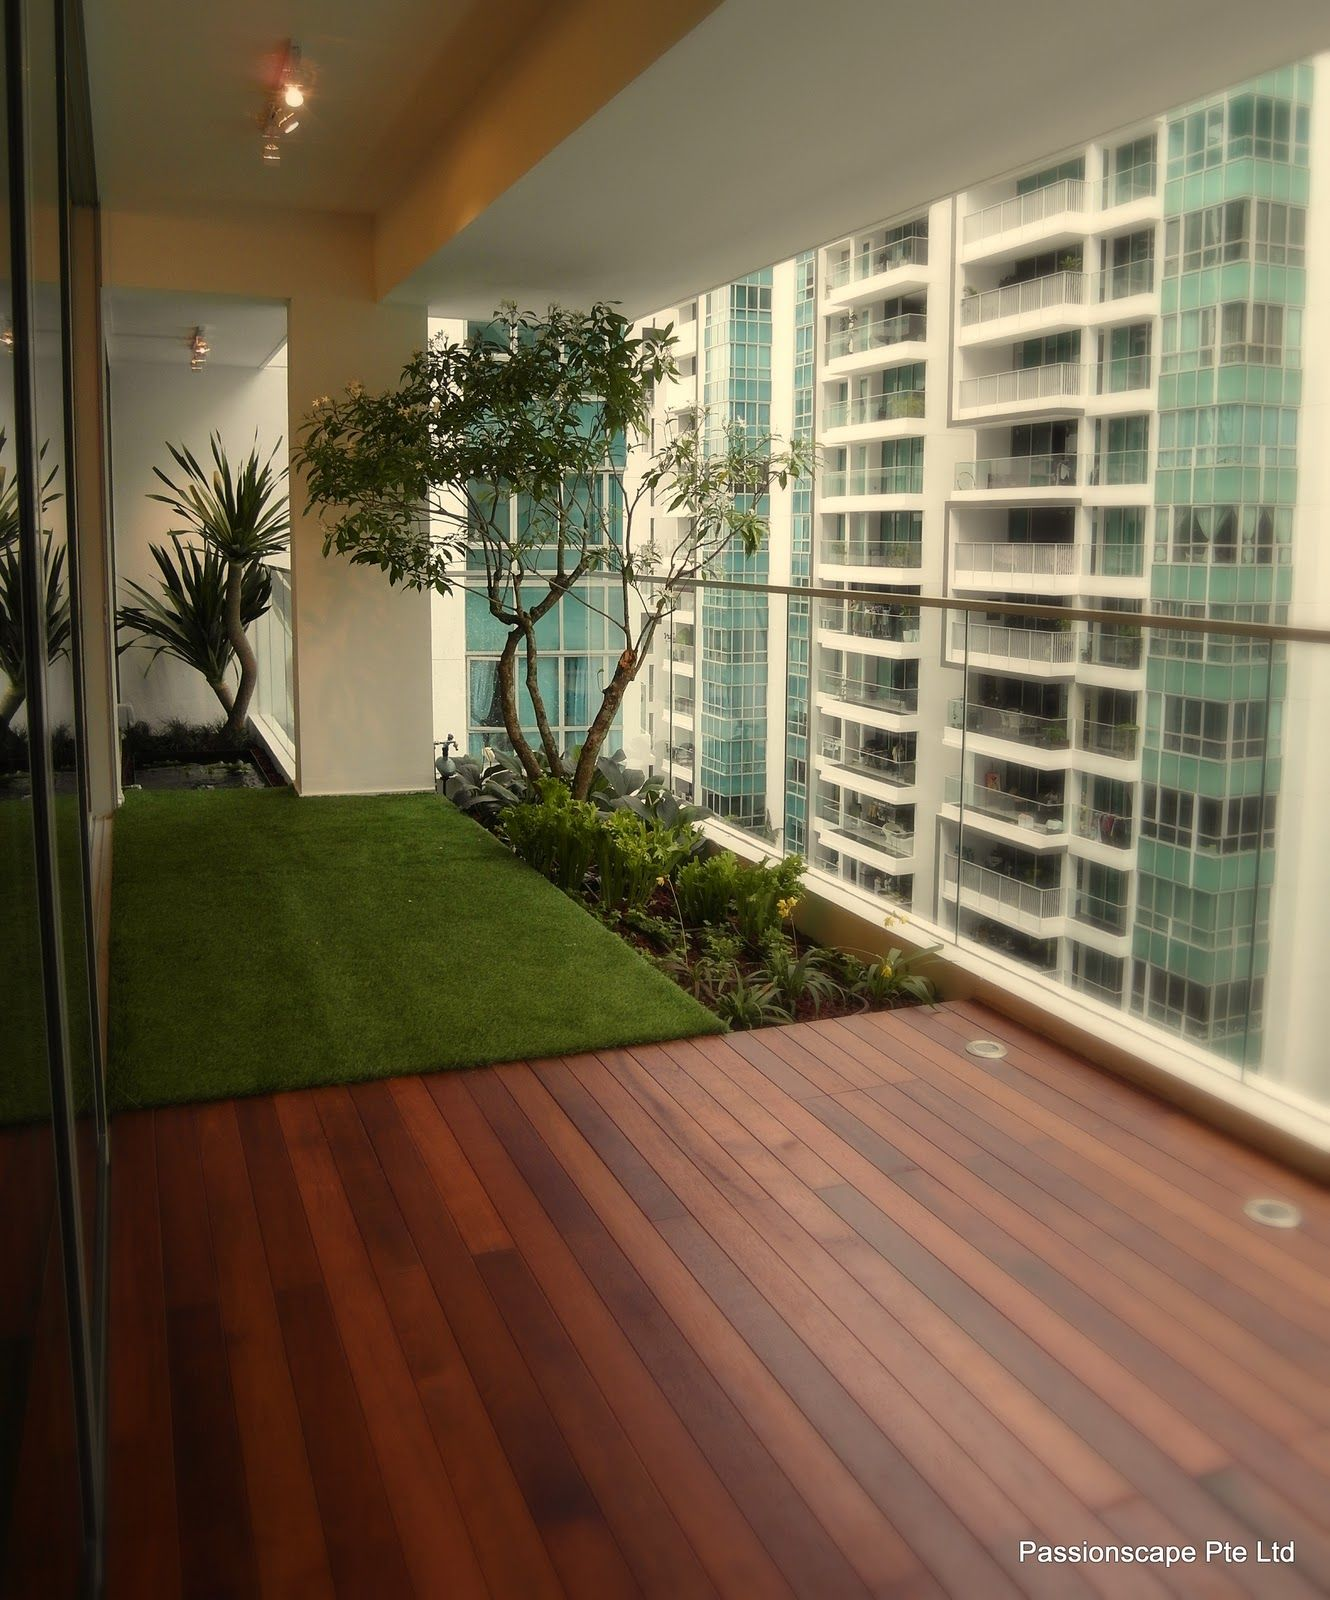 Find Apartments In My Area: Grass Box On Apartment Balcony - Google Search